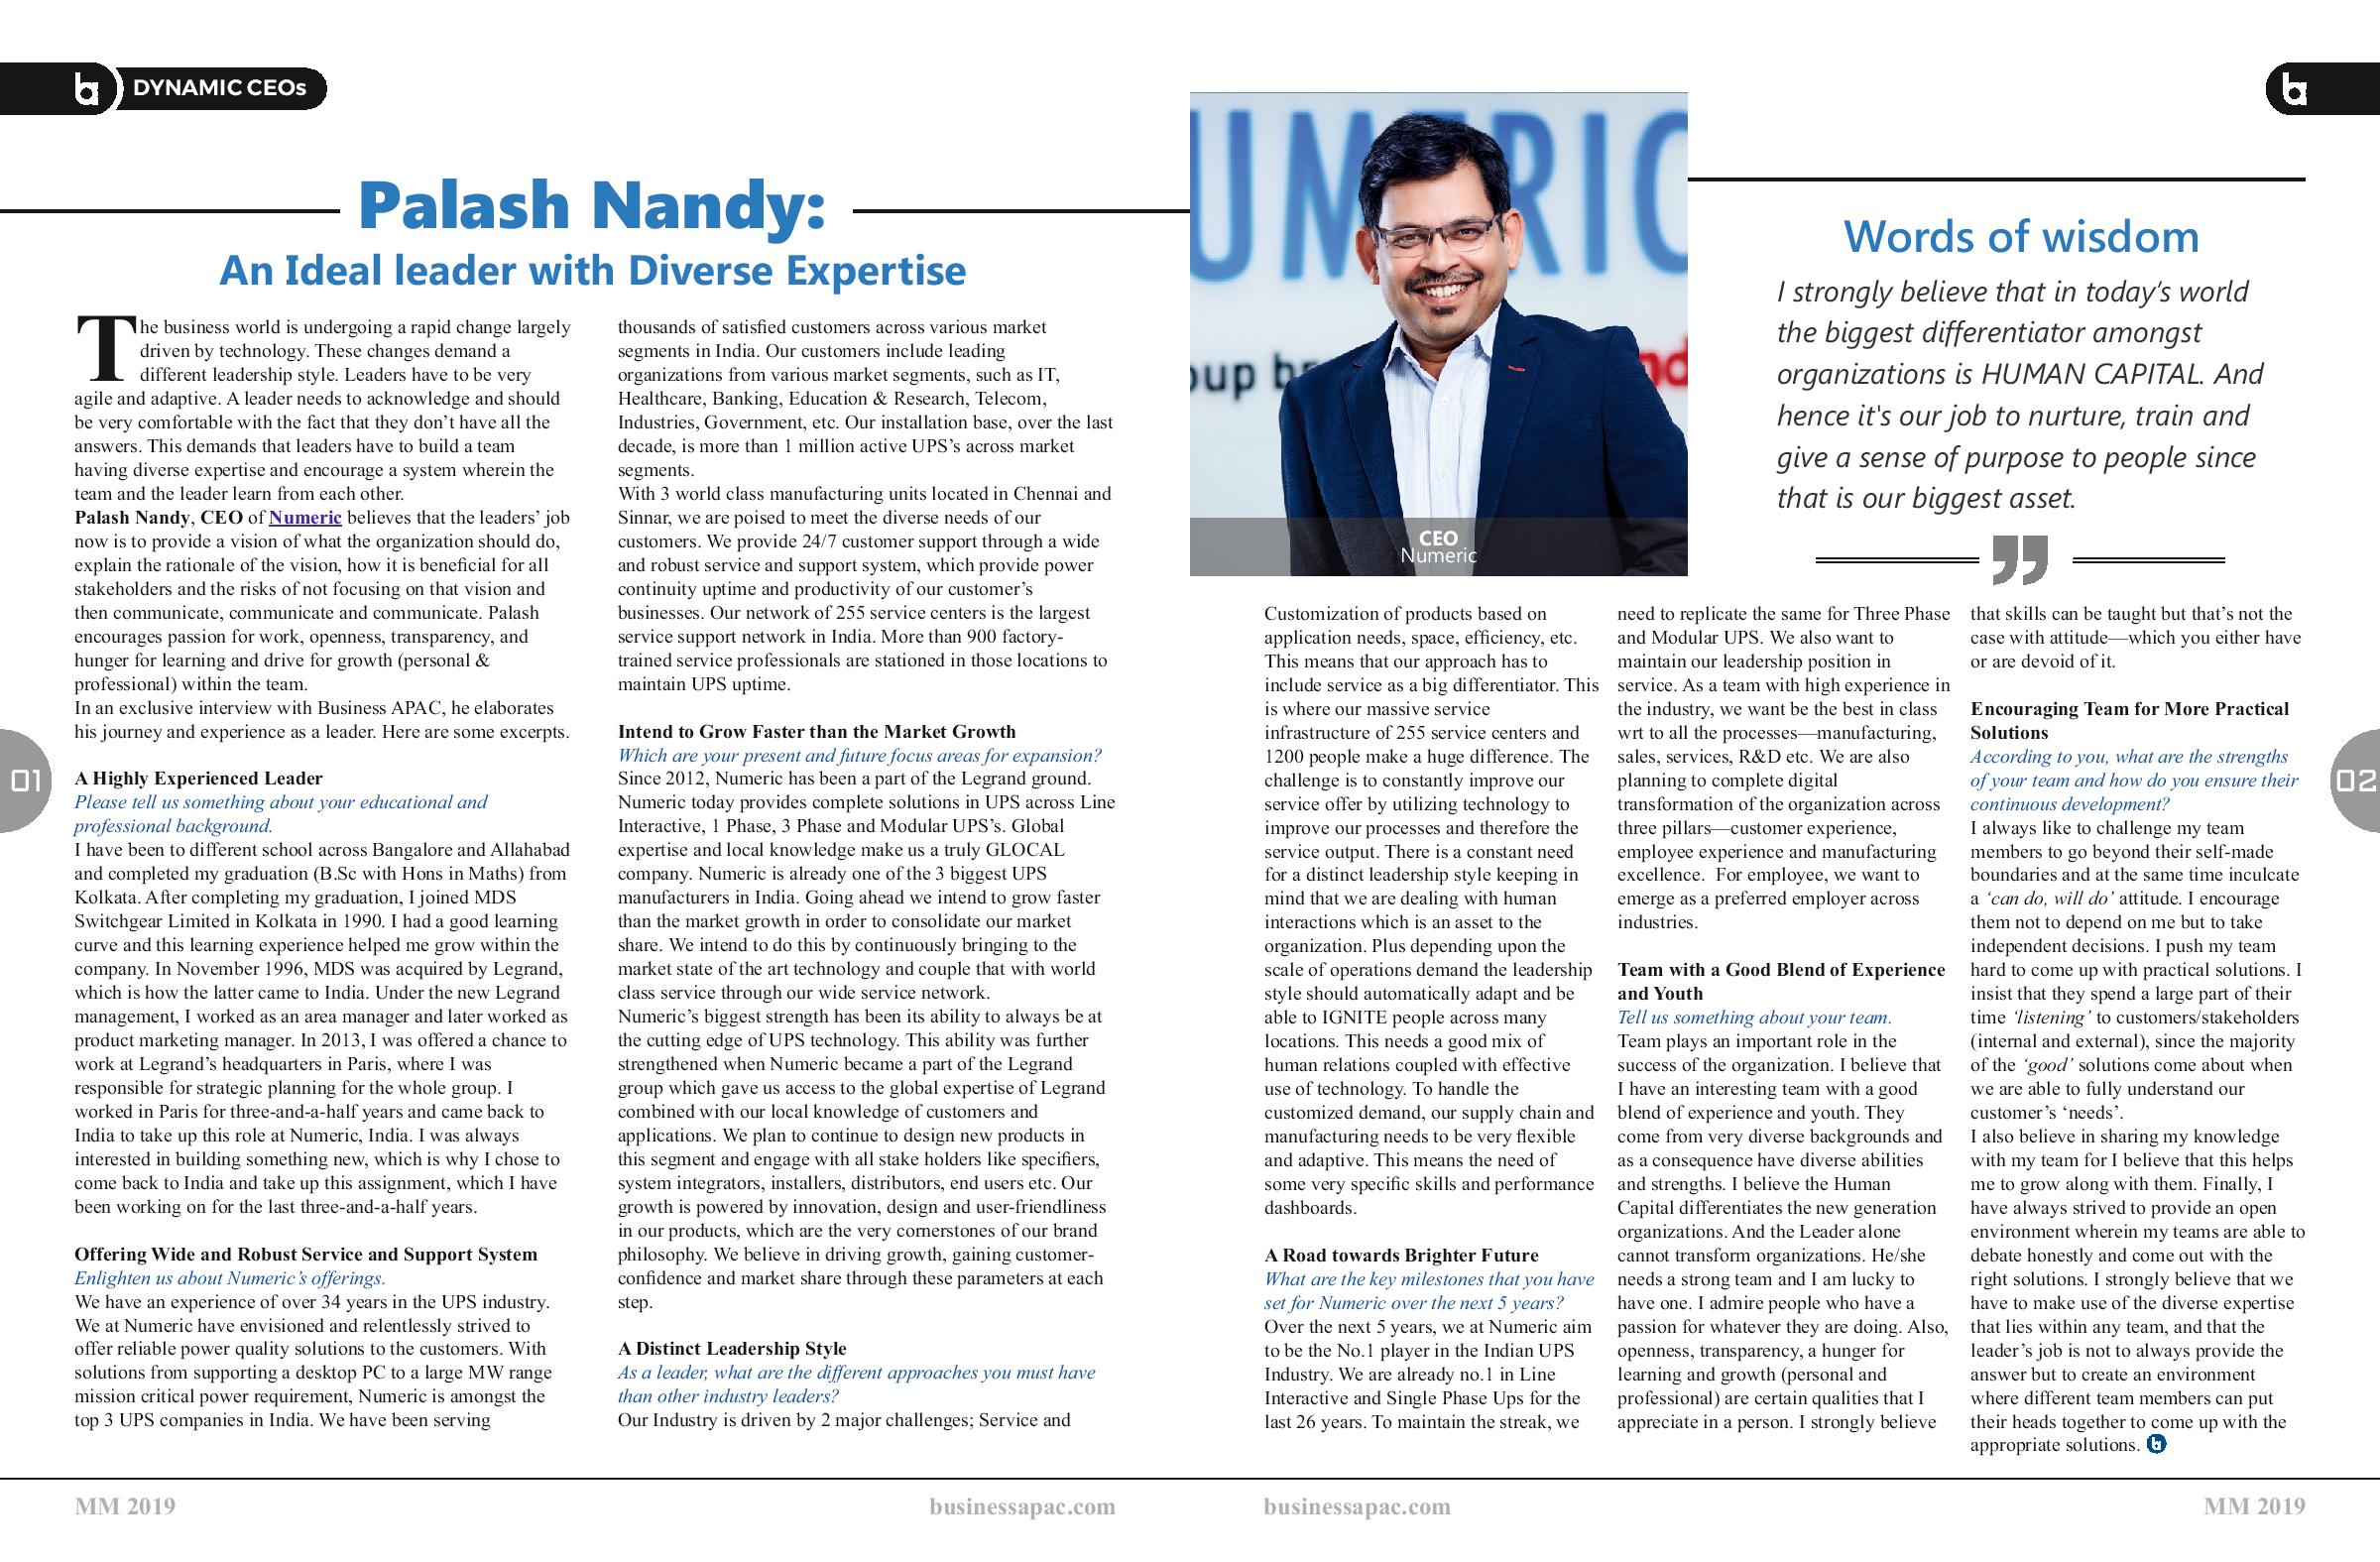 Business APAC Magazine